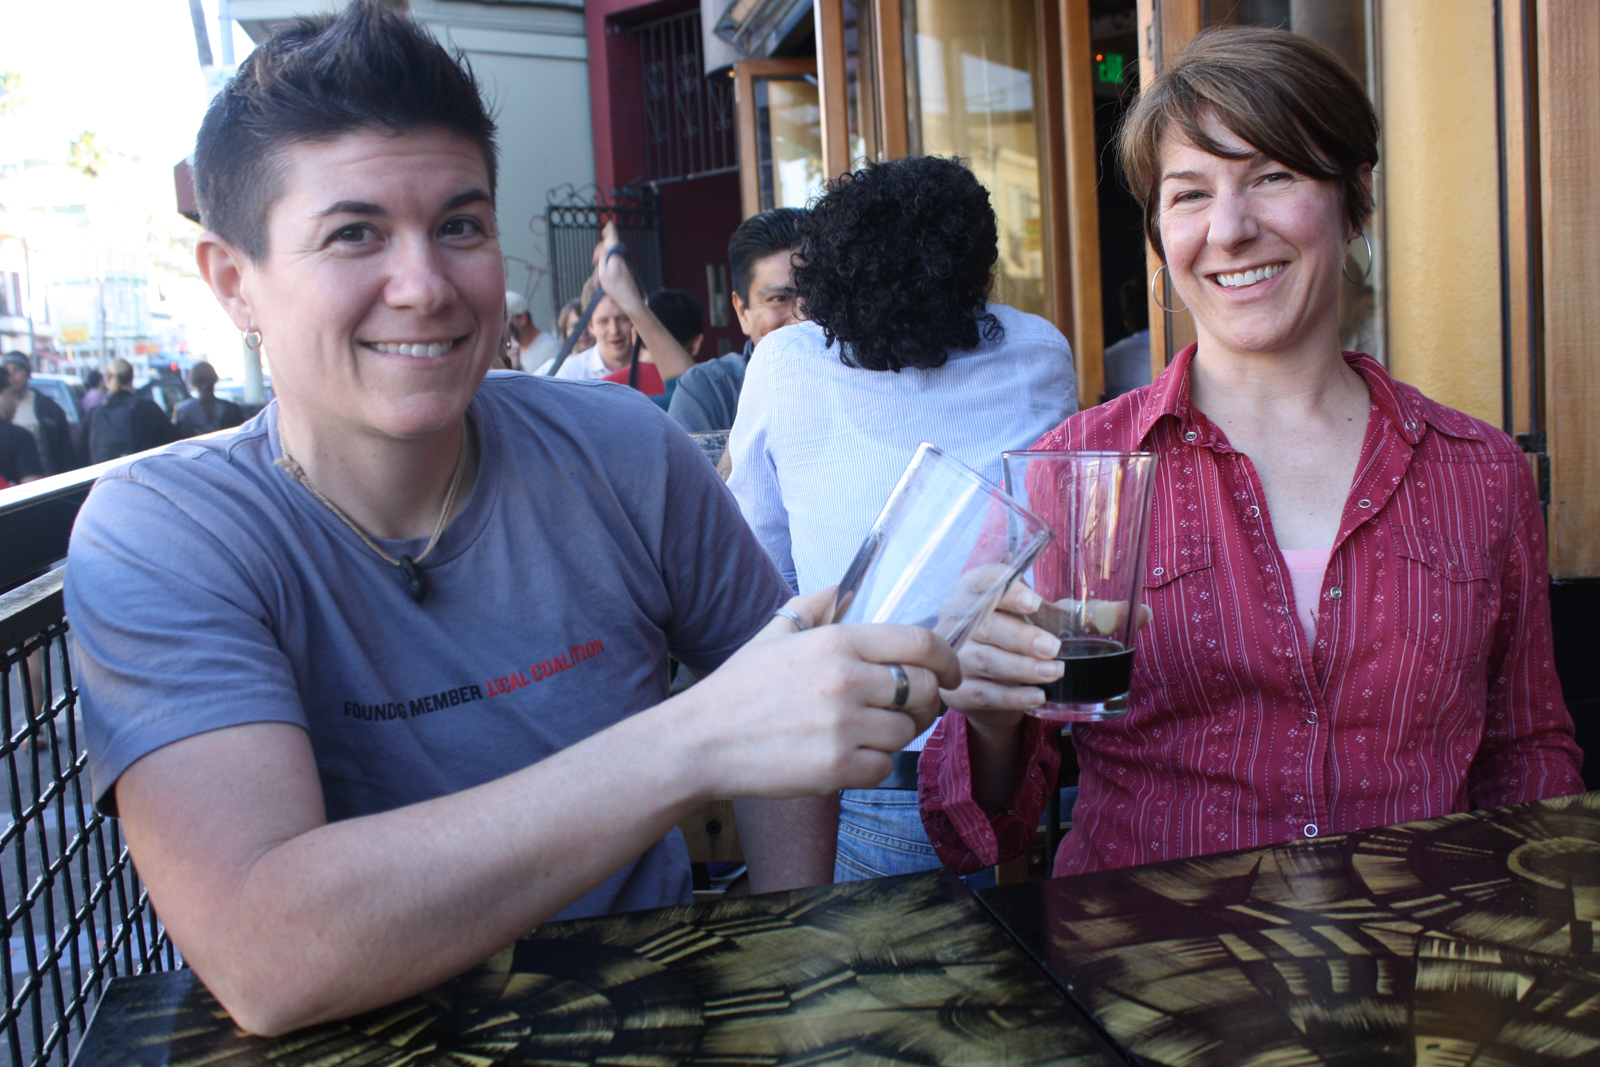 Brewers Regan Long and Sarah Fenson are raising funds to open a neighborhood nano-brewery